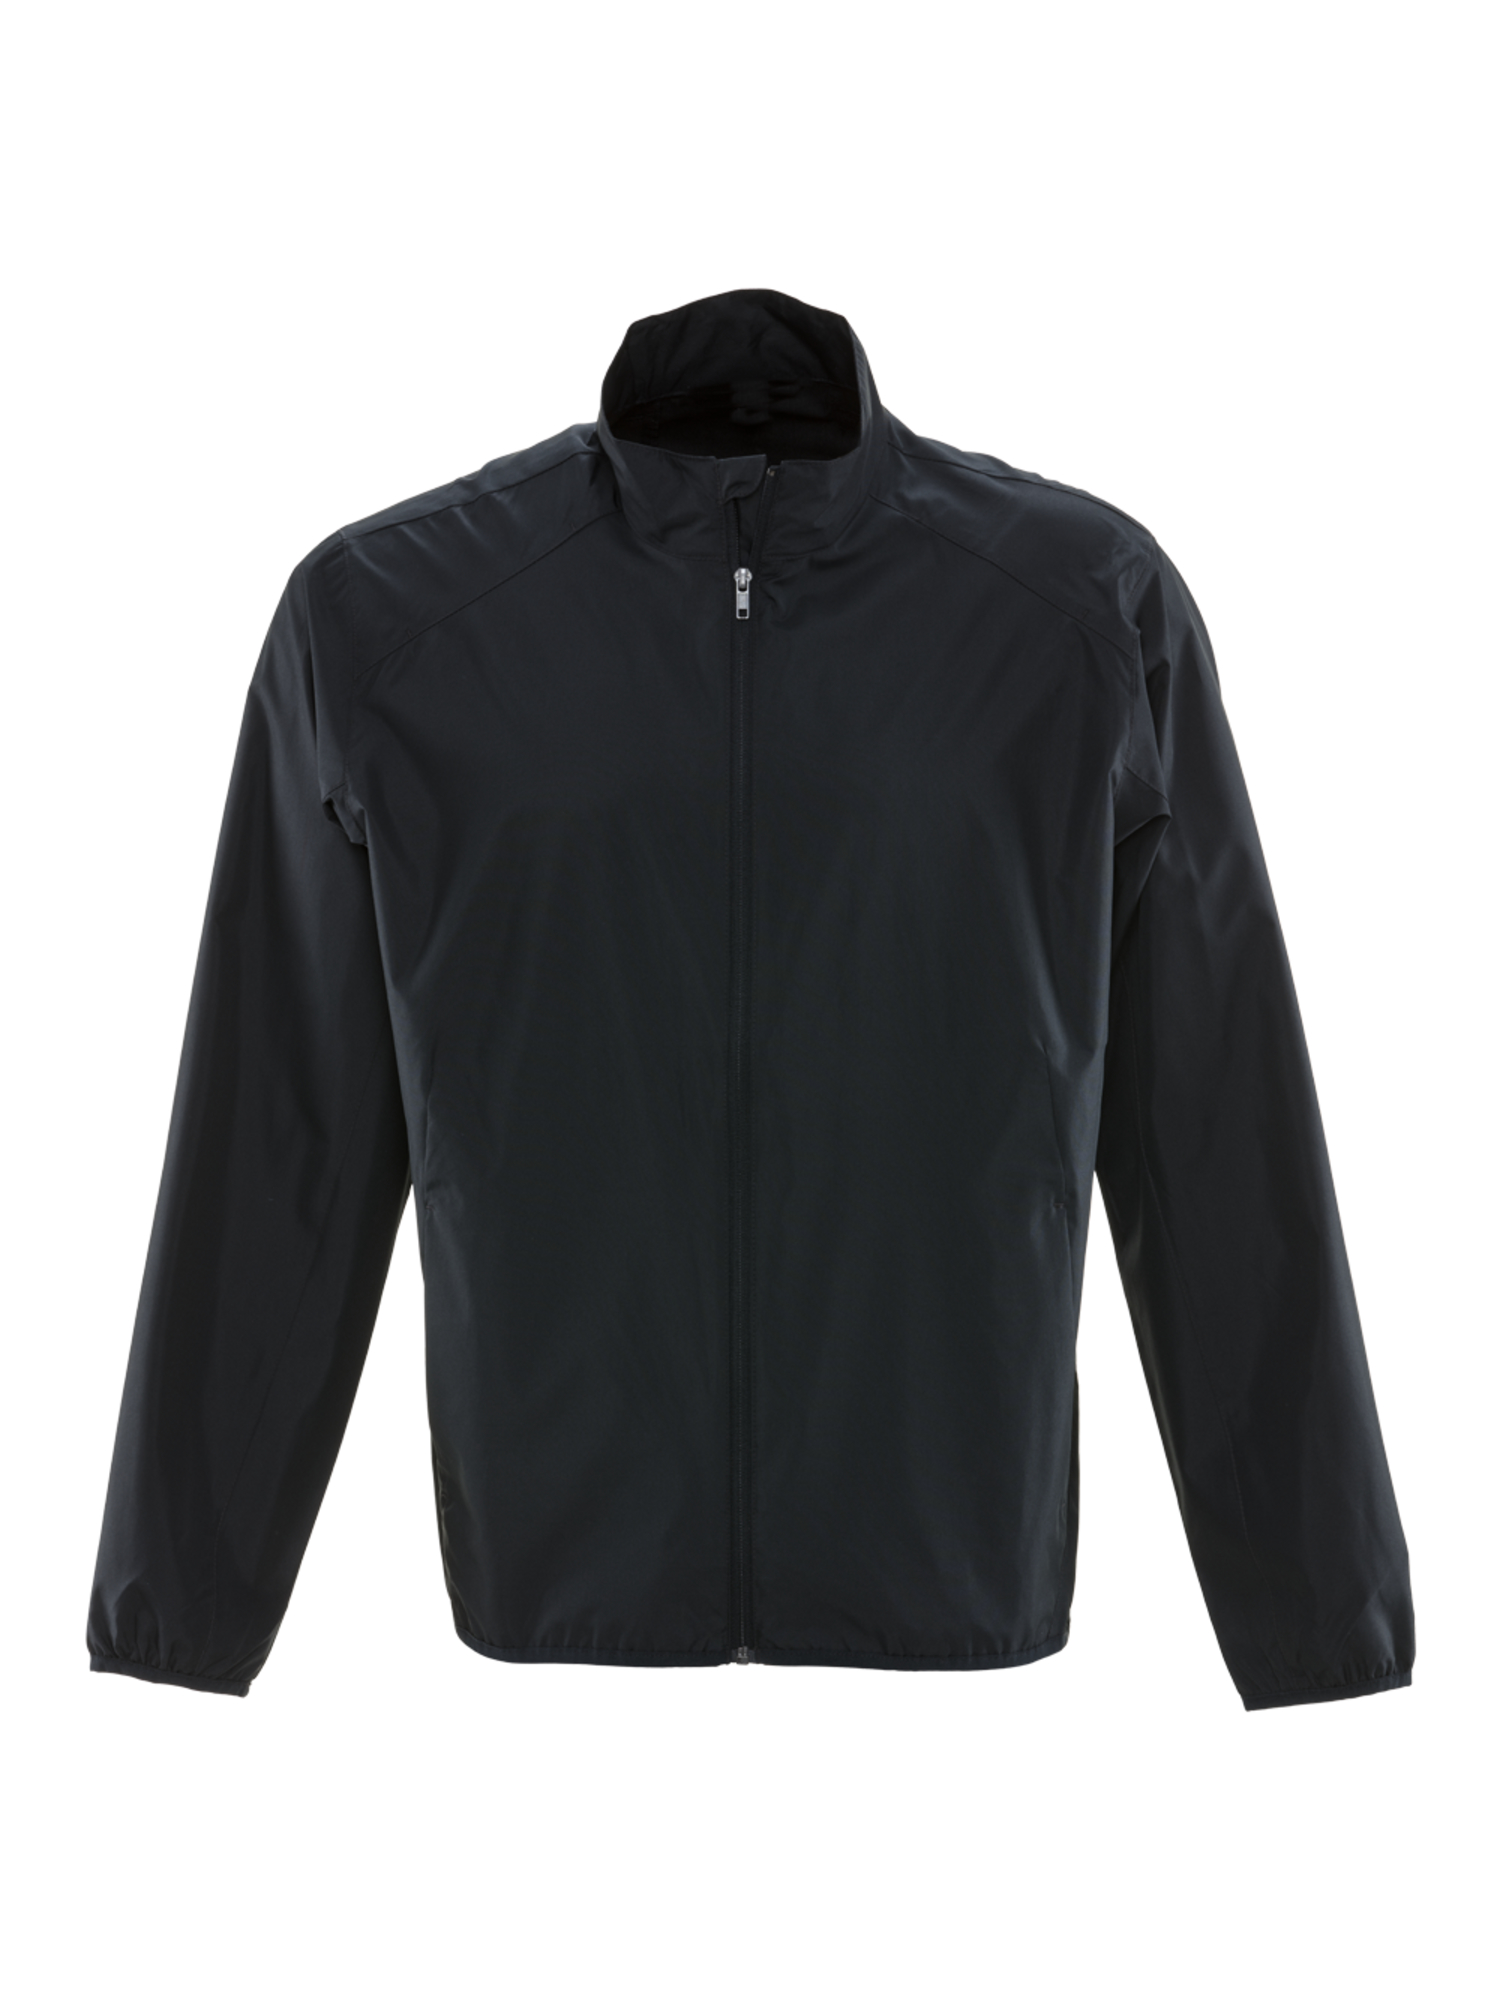 RefrigiWear Men's Windwear Windbreaker Jacket Lightweight and Water-Resistant